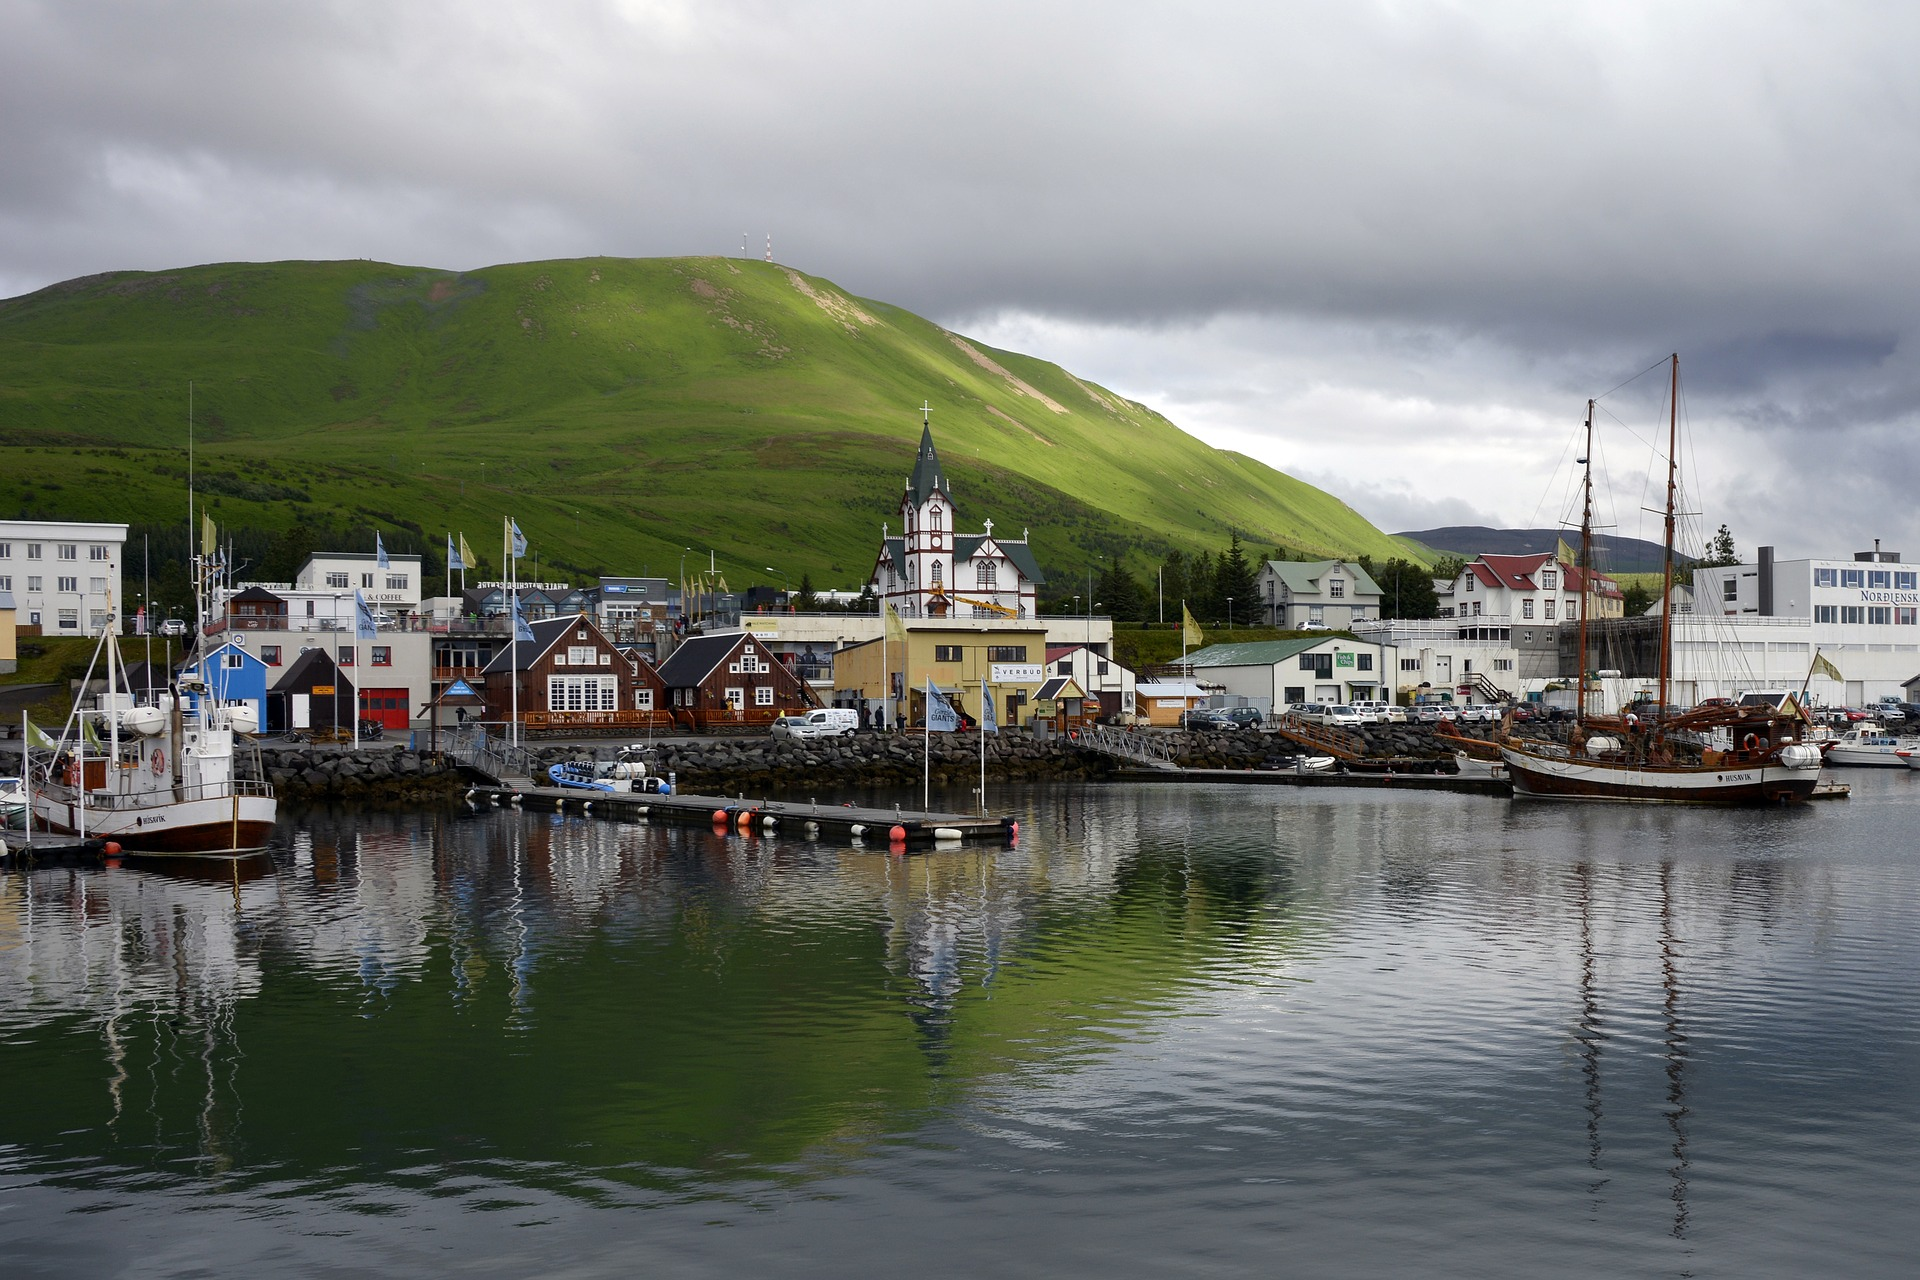 Husavik harbor and town with boats, and mountains on the background